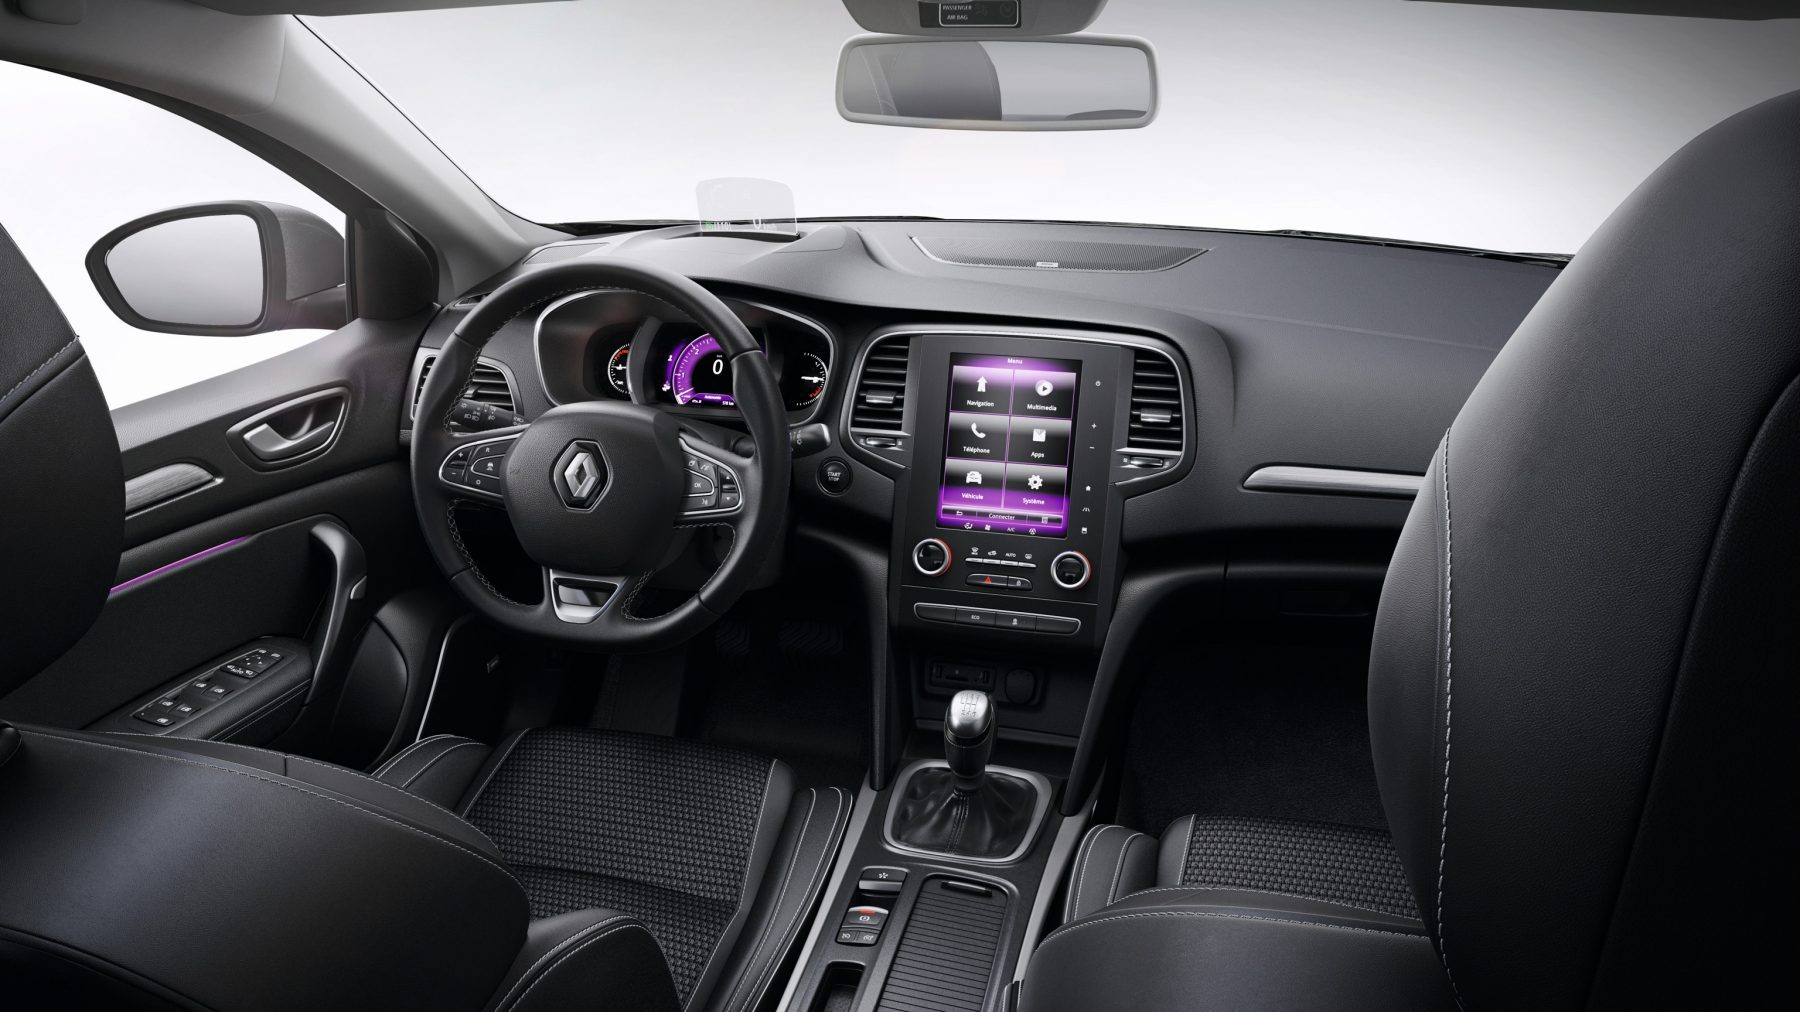 renault megane bfb ph1 overview bose edition 005.jpg.ximg .l 12 h.smart